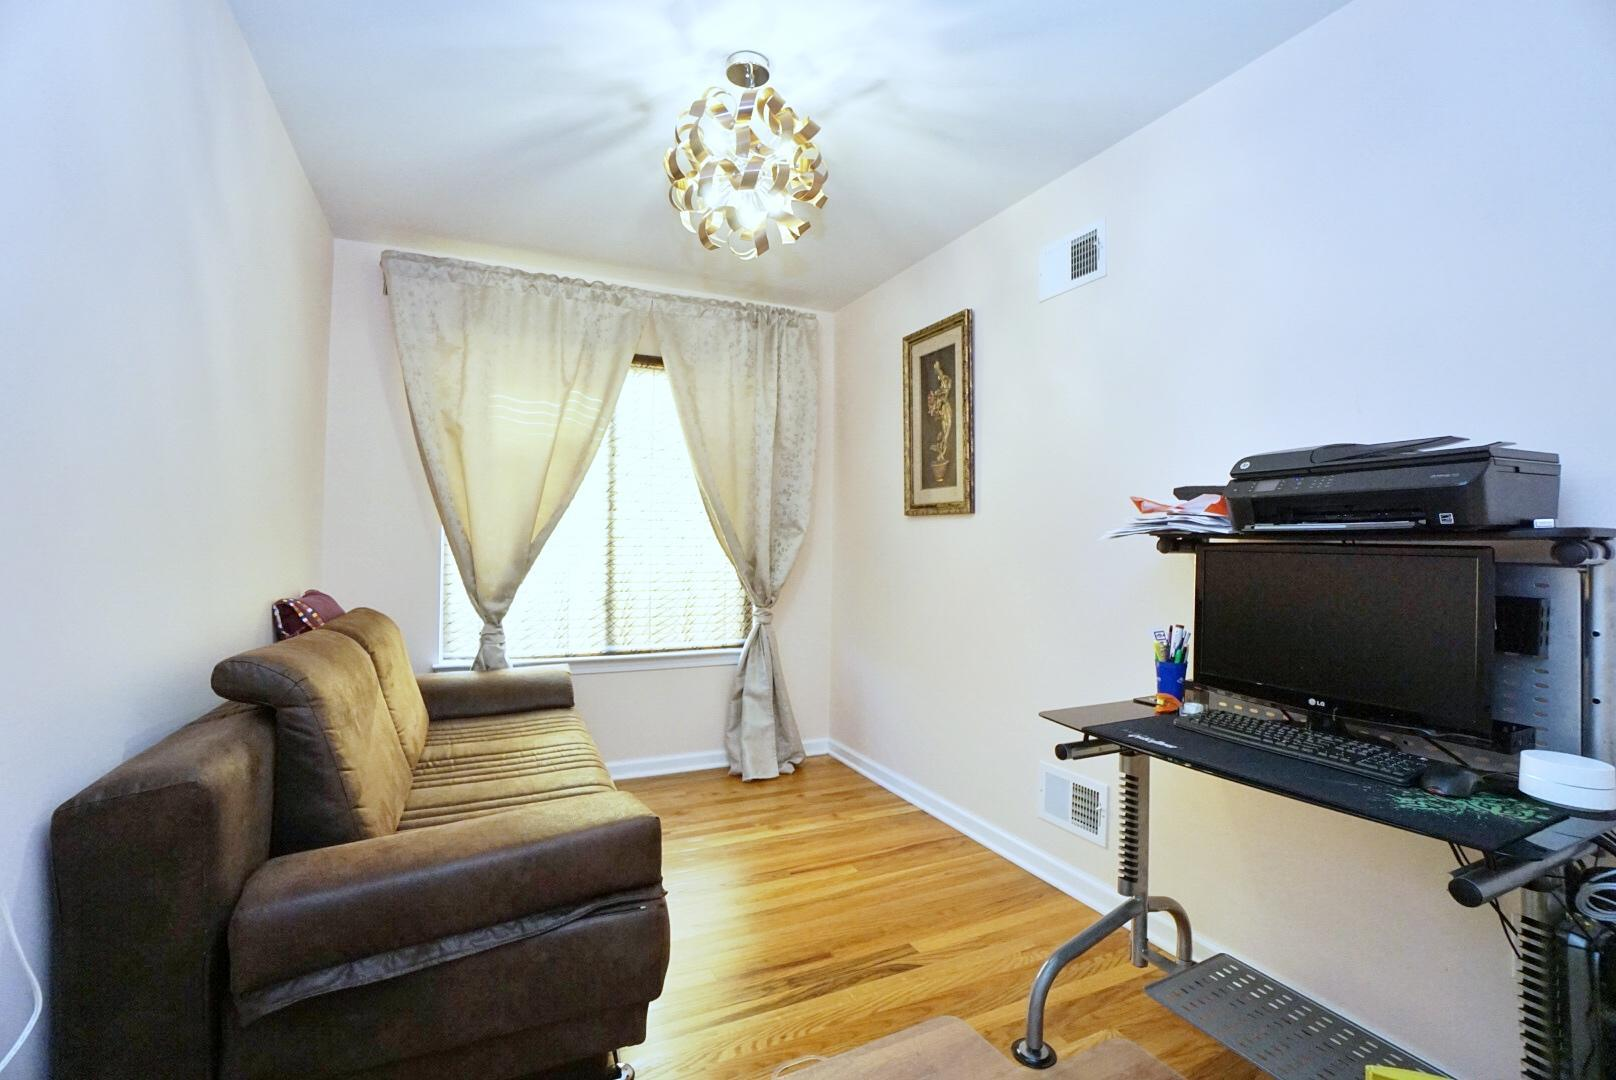 Single Family - Detached 171 Benziger Avenue  Staten Island, NY 10301, MLS-1145235-28